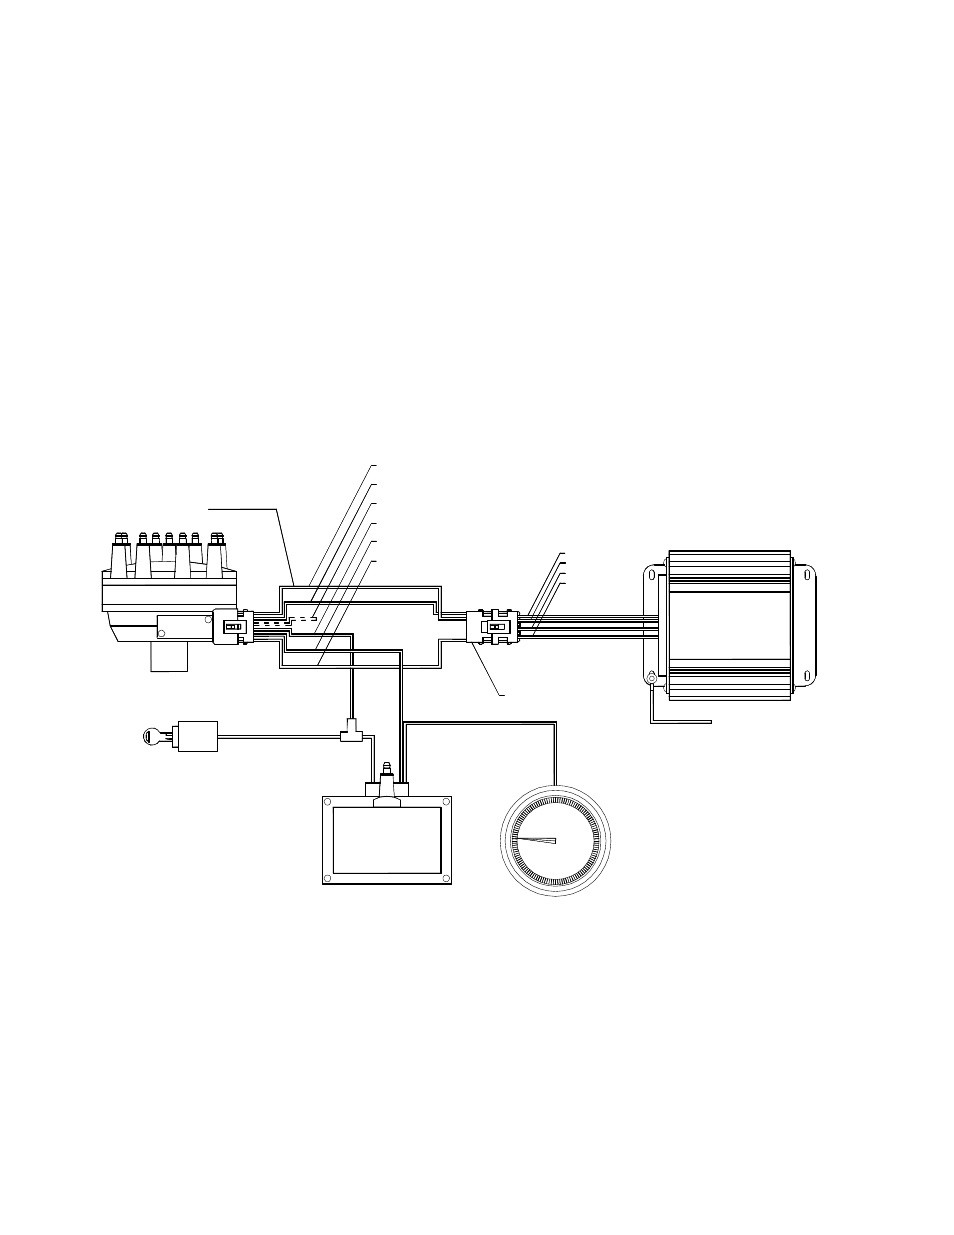 hight resolution of appendix 10 wiring diagrams figure 61 holley commander 950 user manual page 84 98